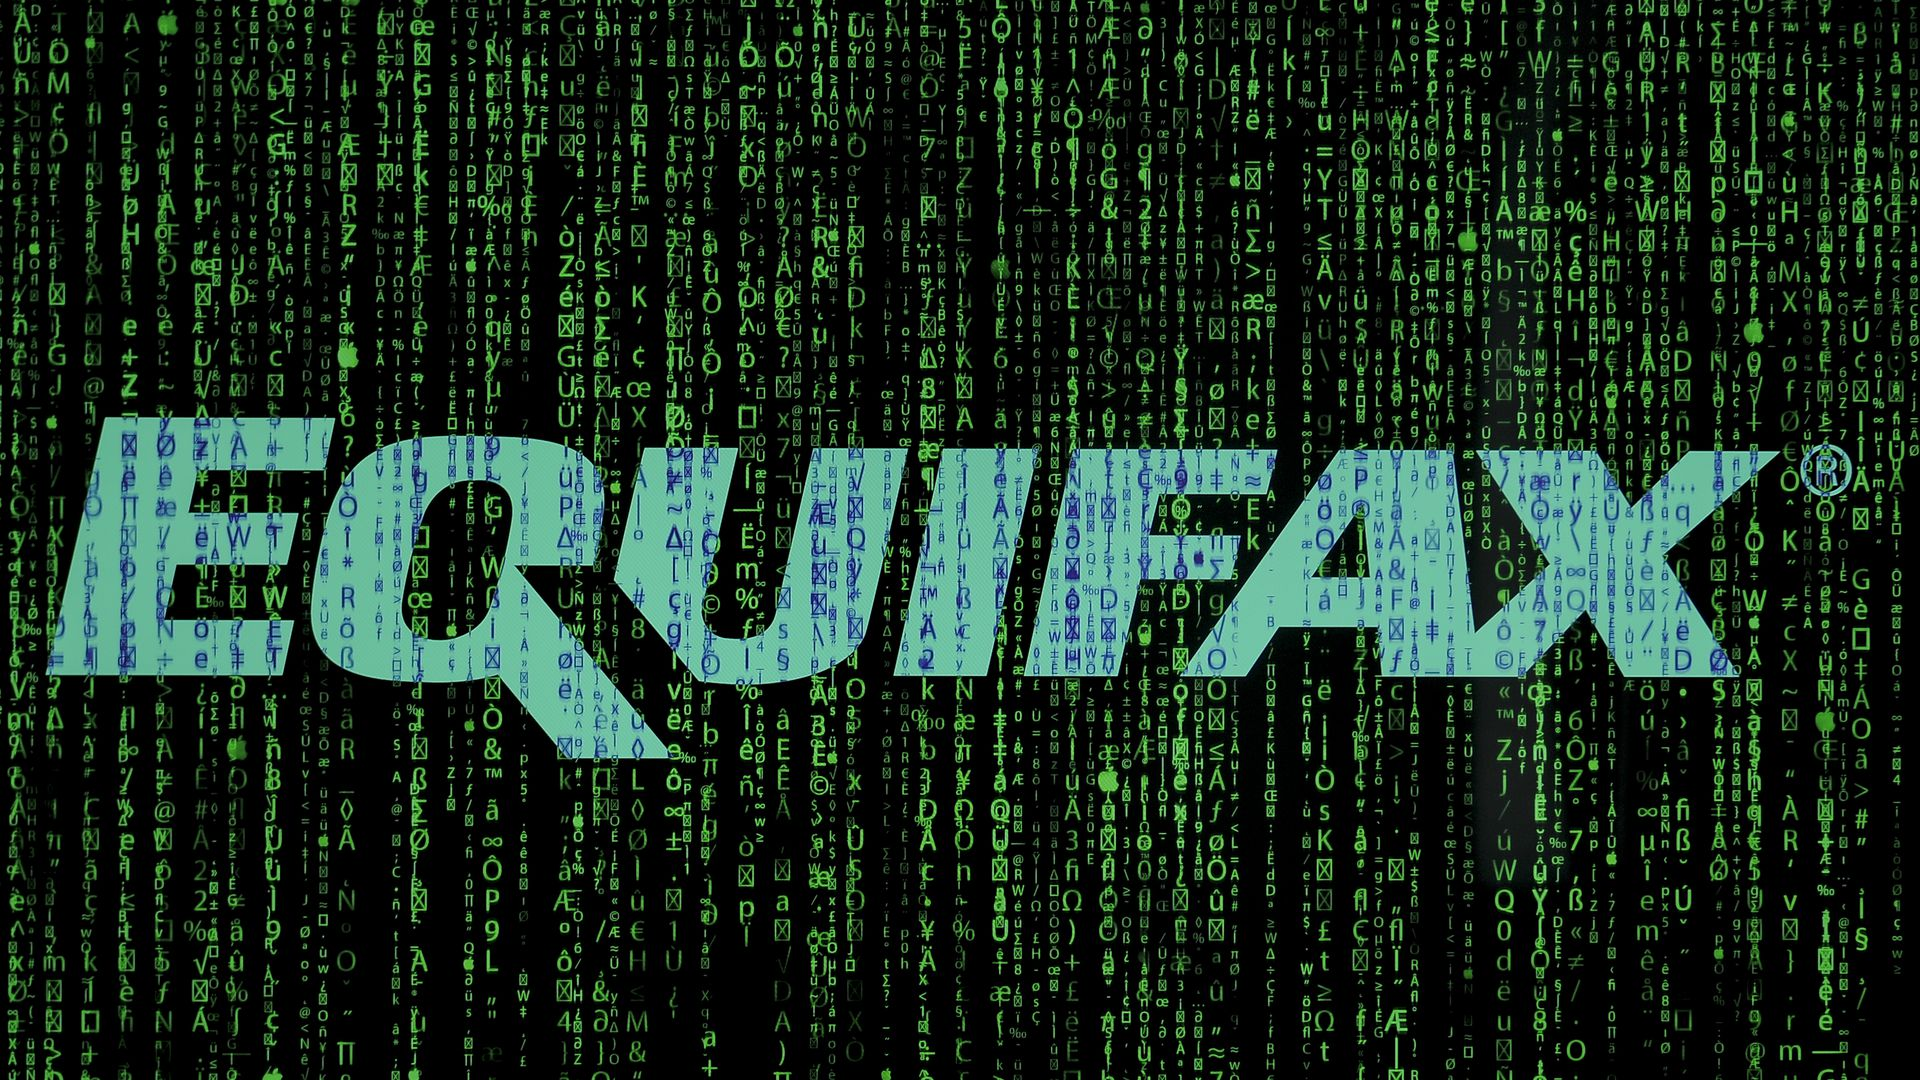 Equifax logo in white before data in green.